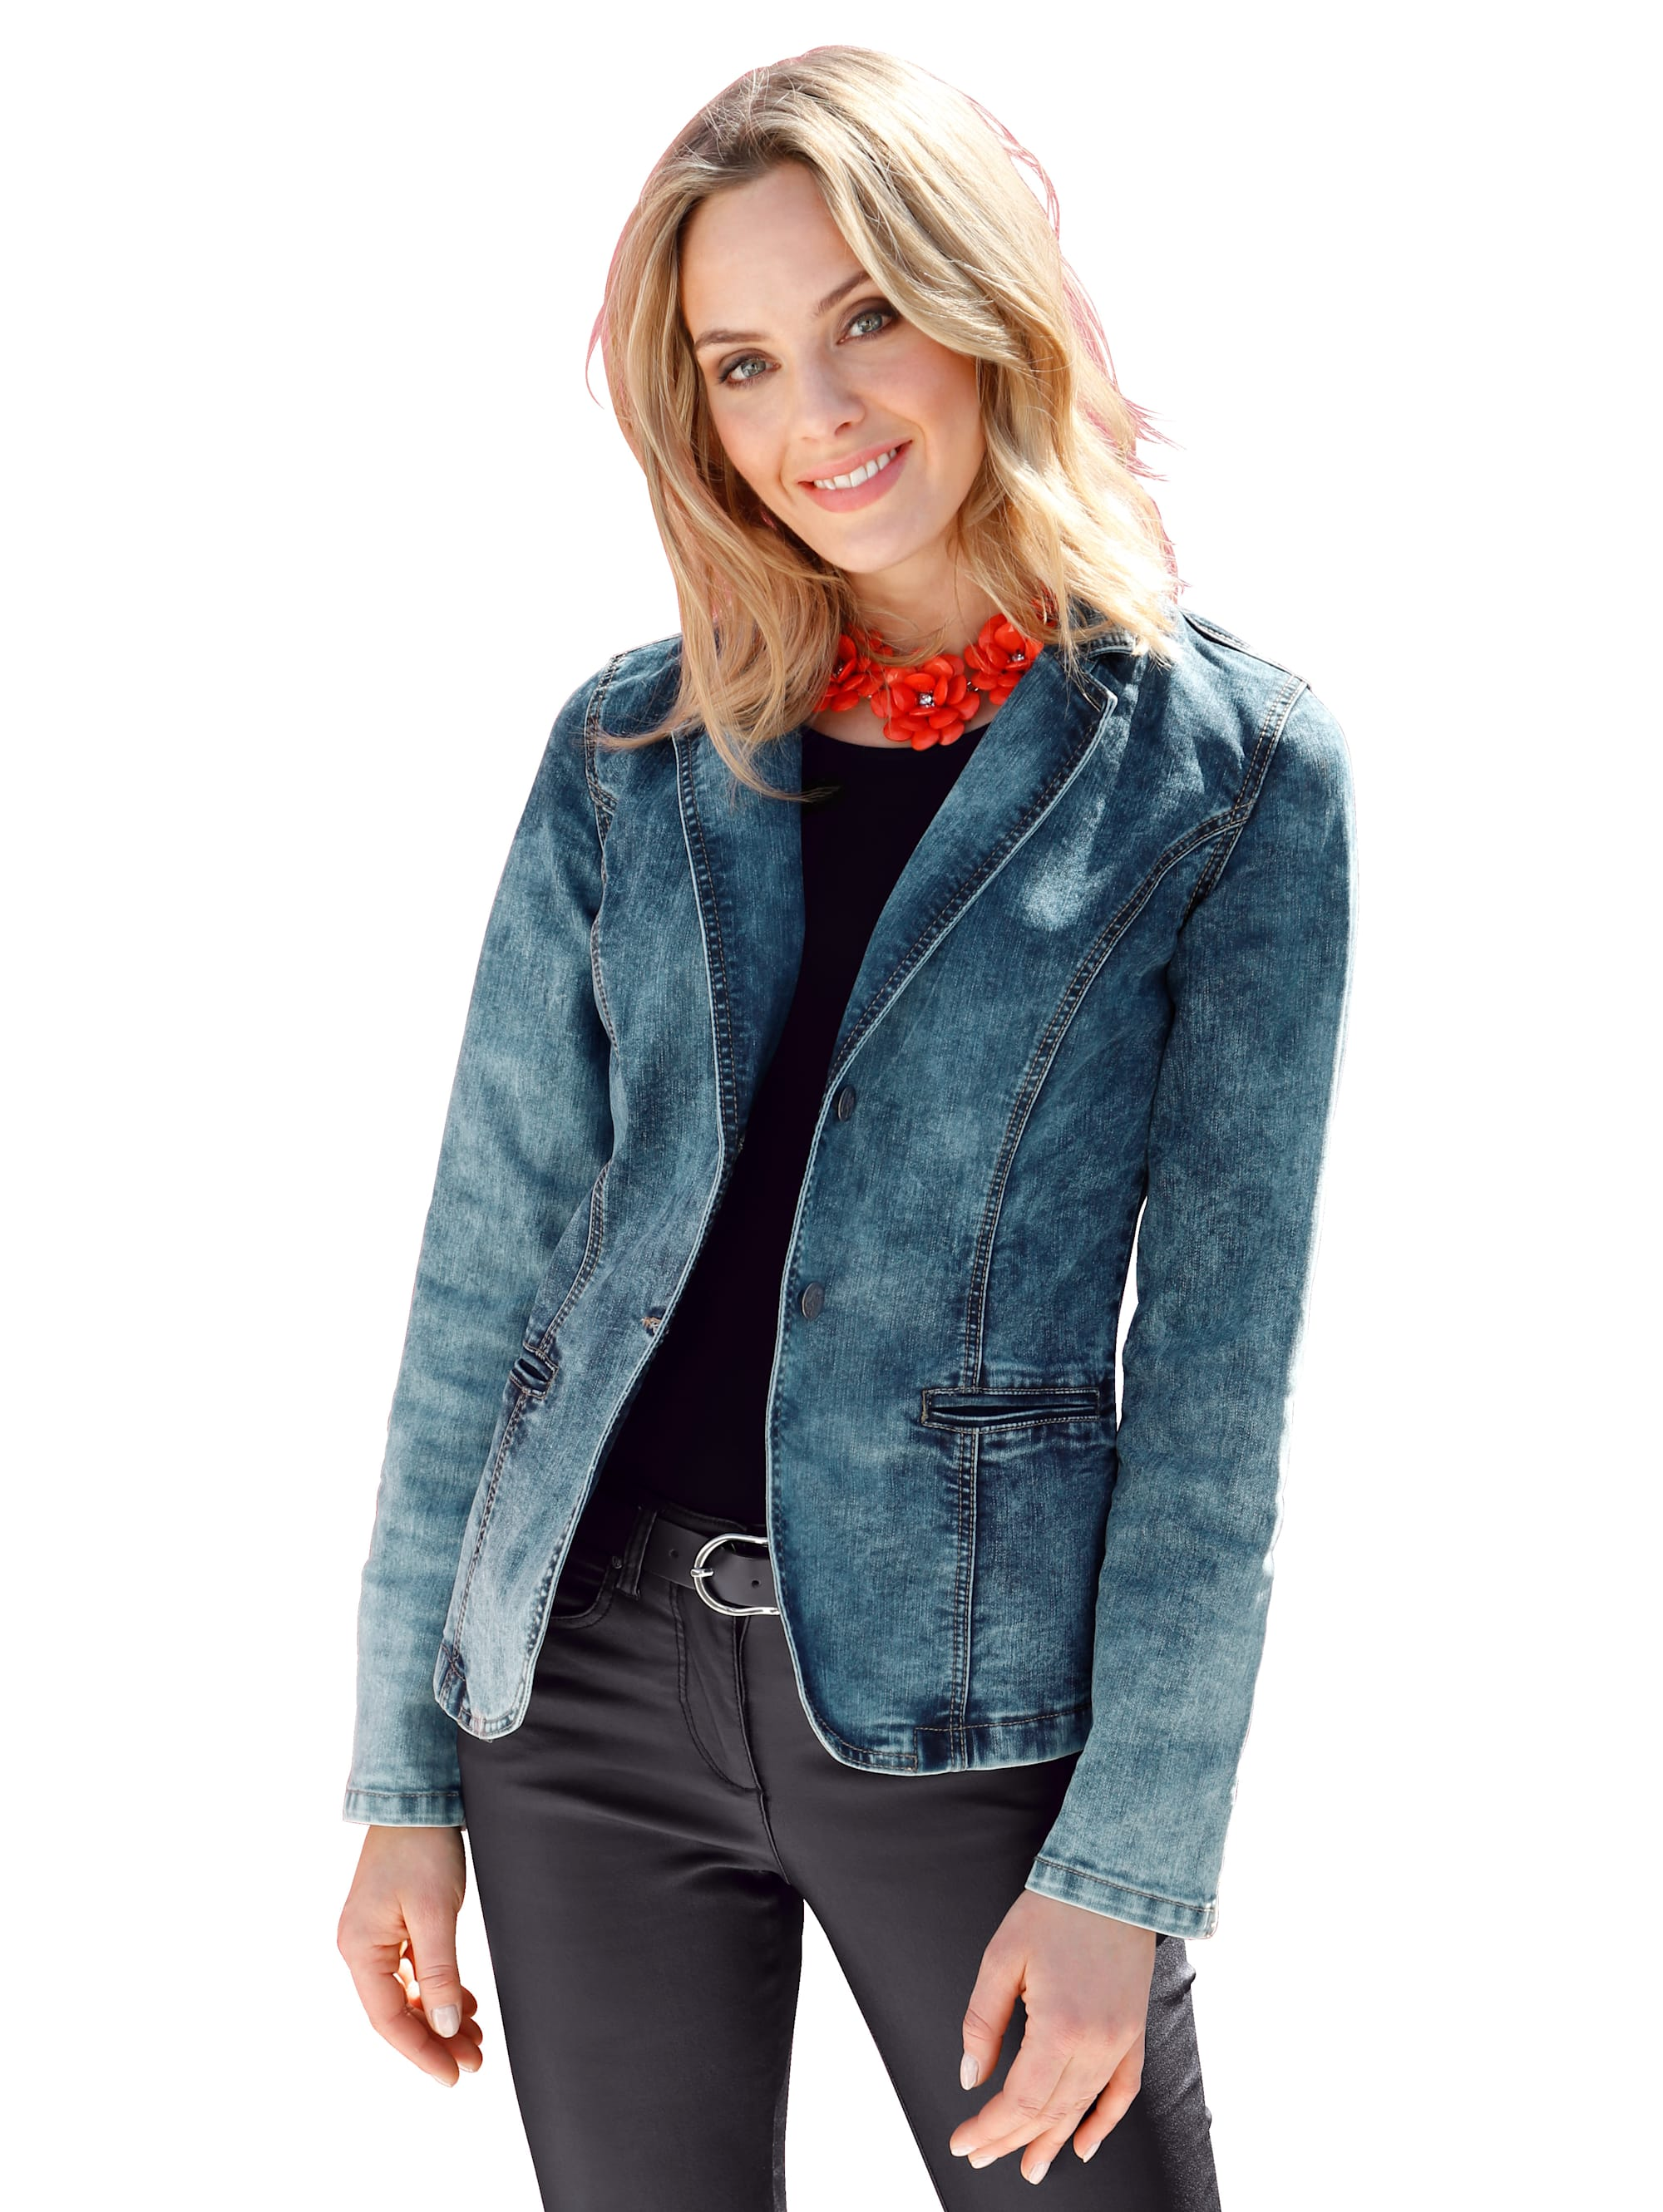 AMY VERMONT Jeansjacke in moderner Waschung ossNR tU5U2